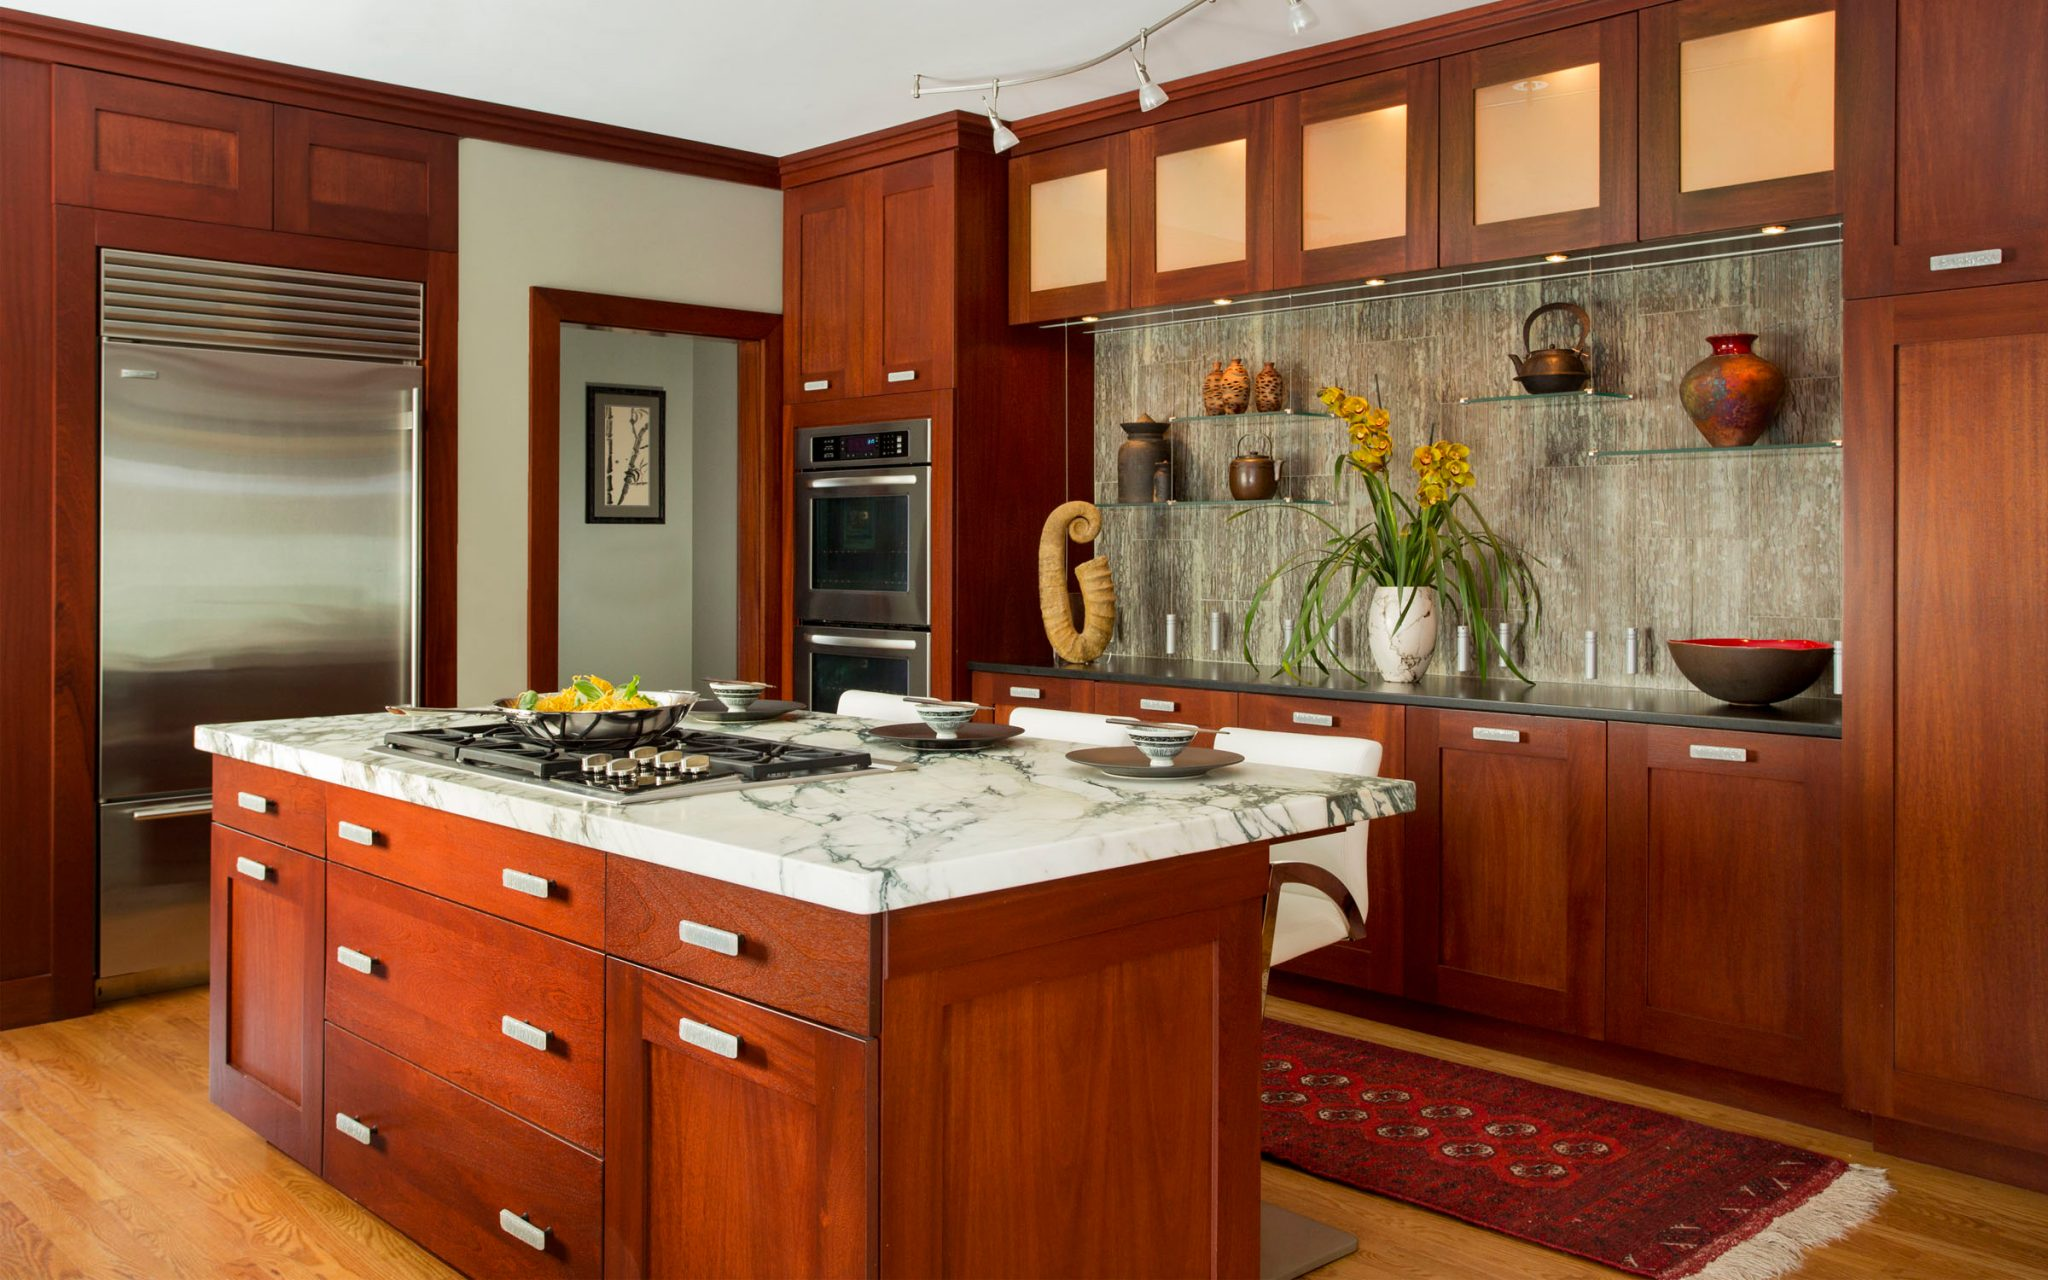 Colorful Kitchen Design Ideas 10 from Boston interior designer Elizabeth Swartz Interiors